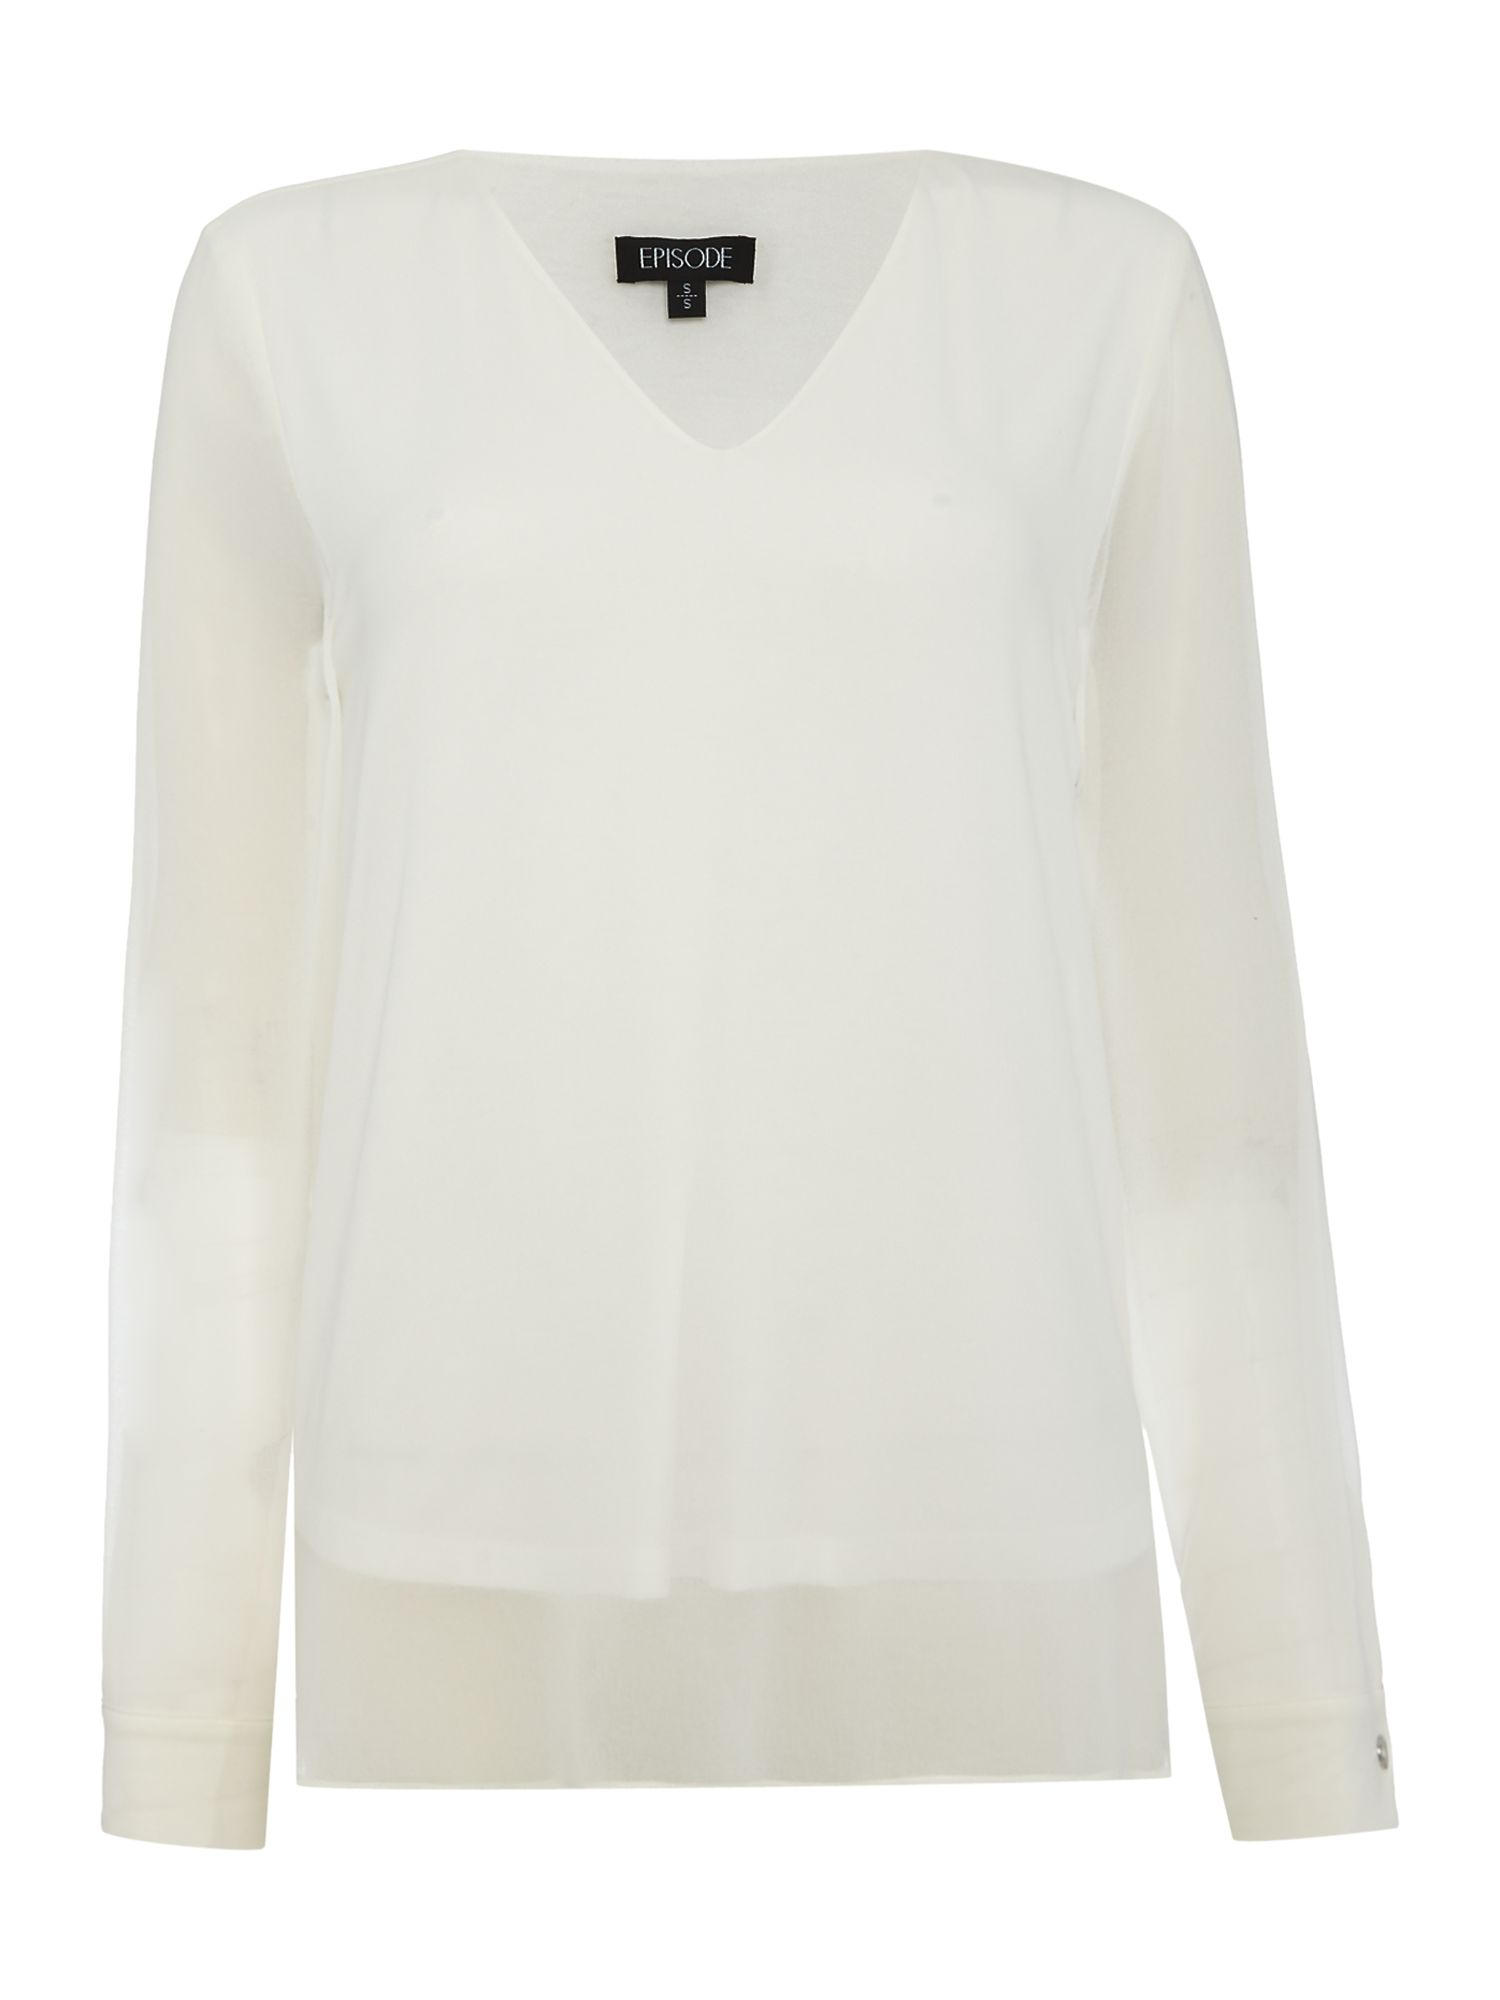 Episode Episode Long sleeve chiffon dipped hem, White